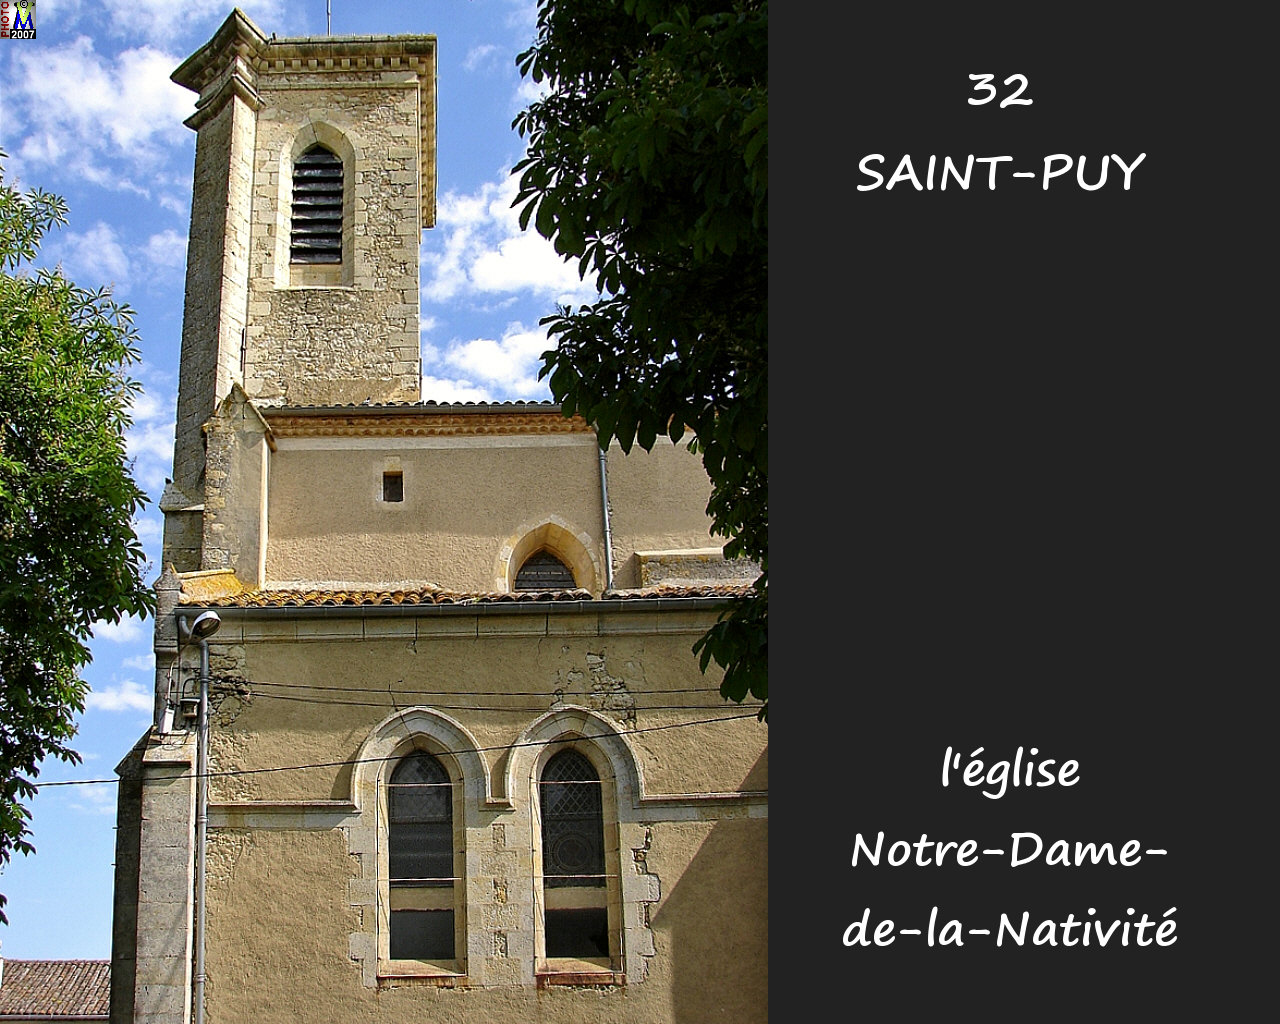 32St-PUY_eglise_102.jpg